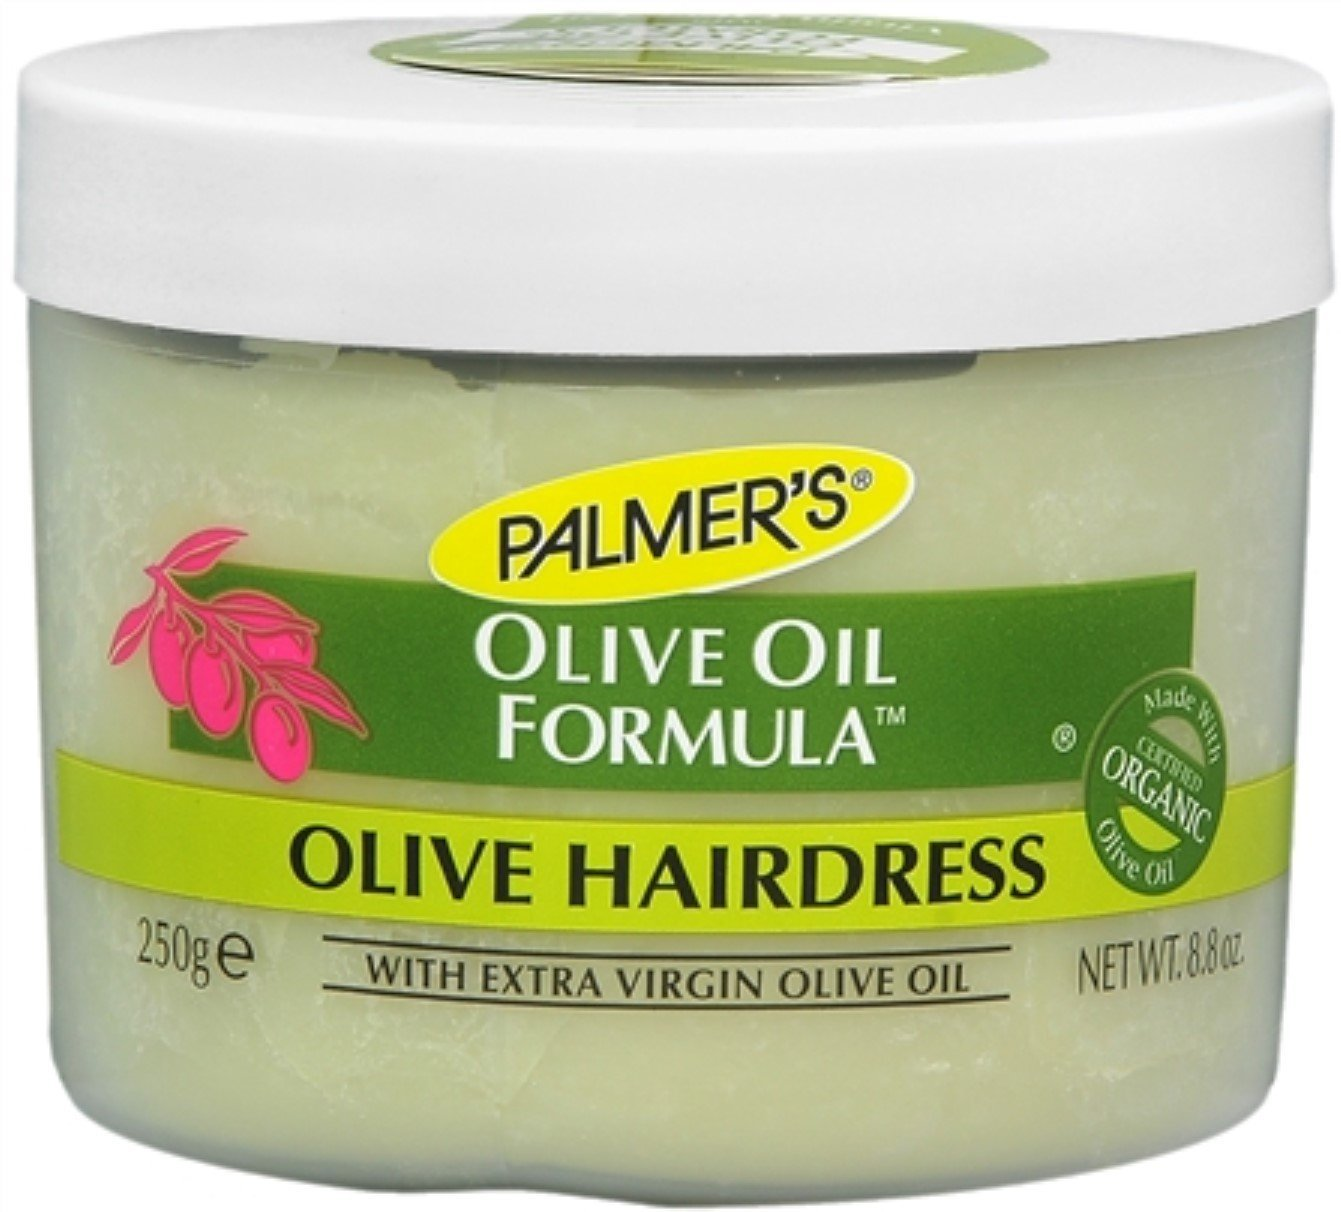 palmer 39 s olive oil formula extra conditioning for dry hair. Black Bedroom Furniture Sets. Home Design Ideas